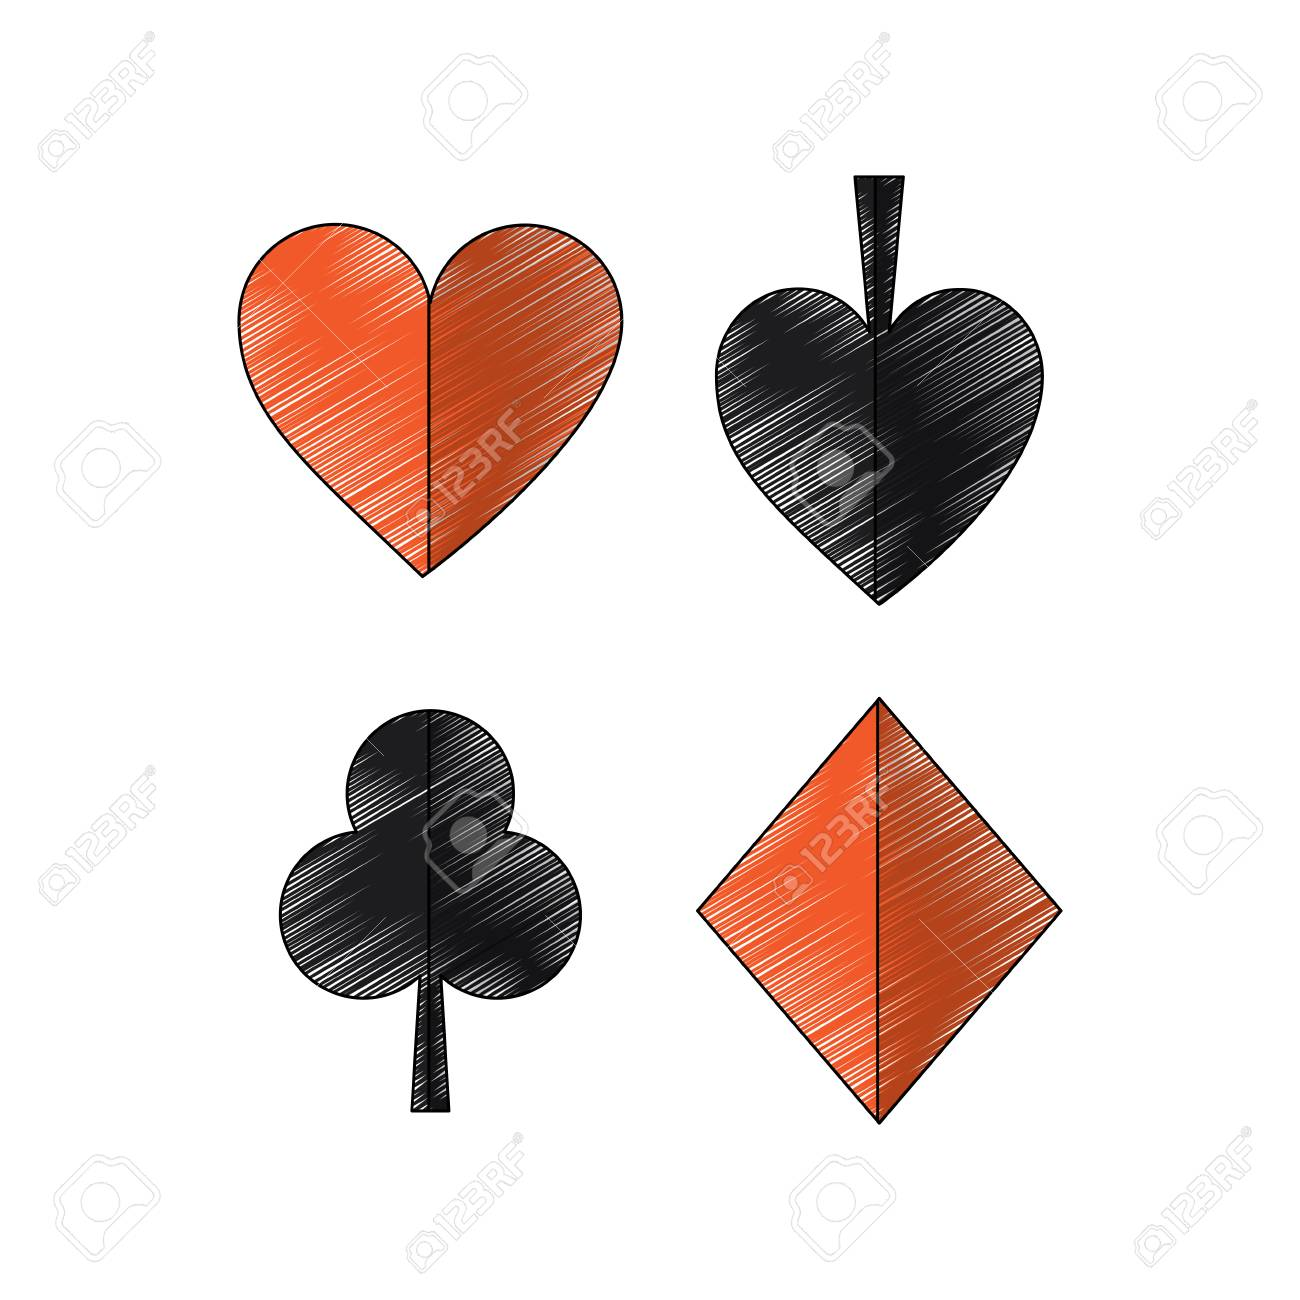 spade clover card  suits diamond pike spade tile clover clubs hearts french playing..